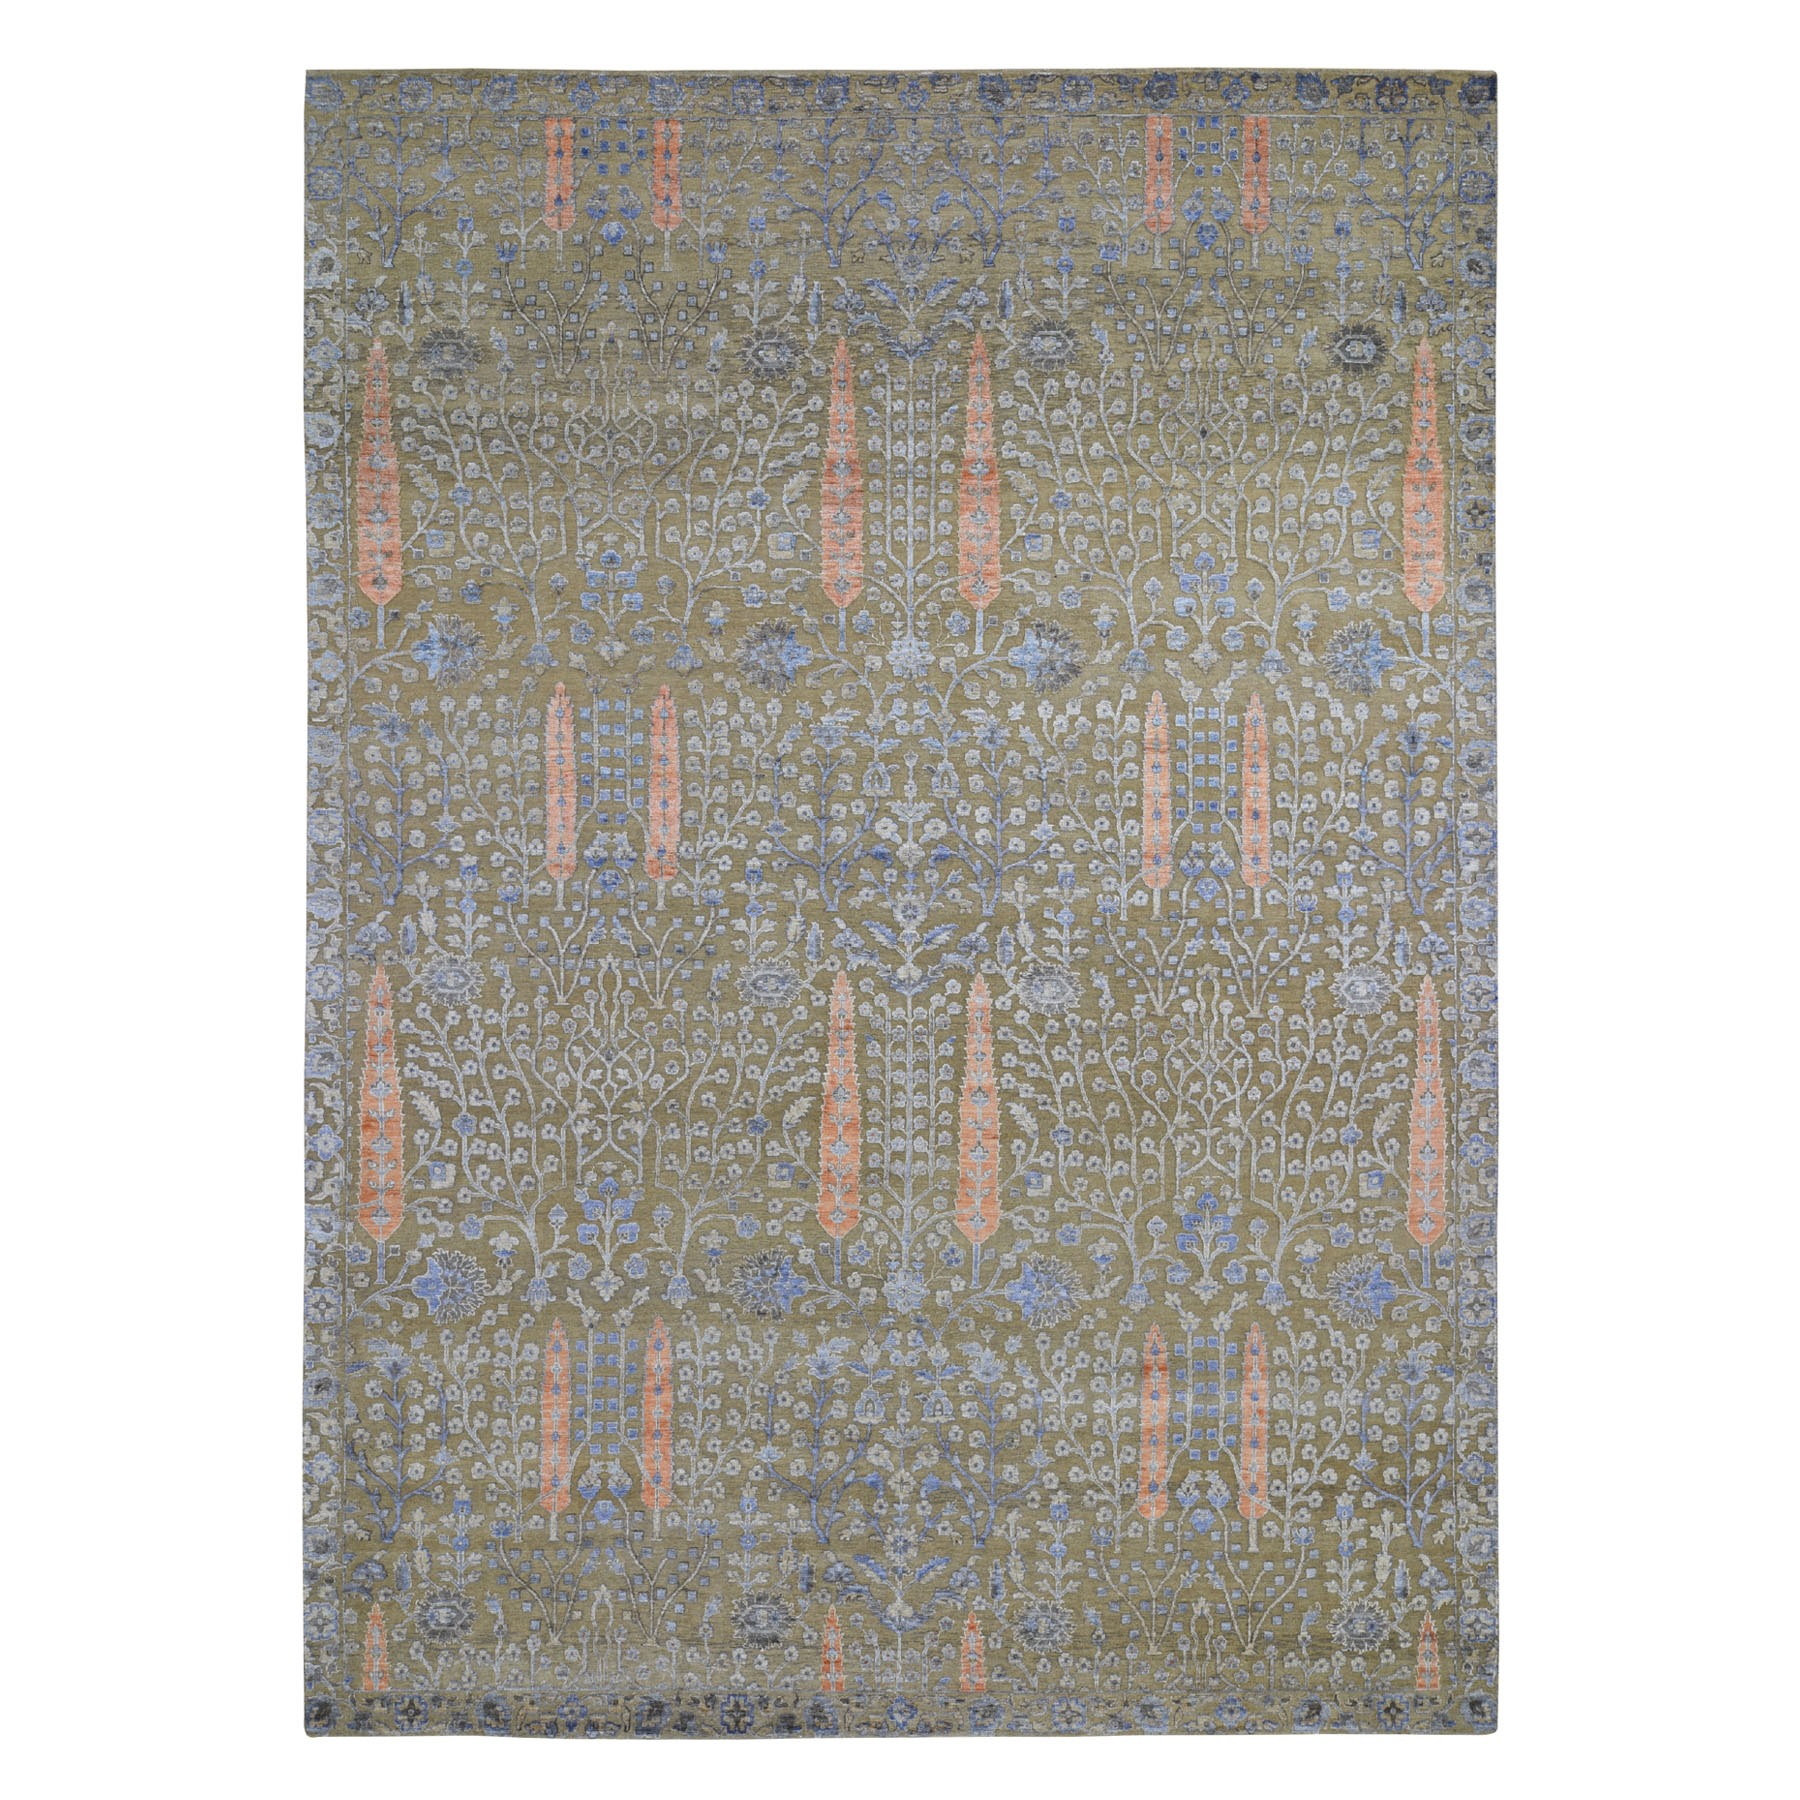 10'X14' Cypress Tree Design Silk With Textured Wool Hand Knotted Oriental Rug moad7e70